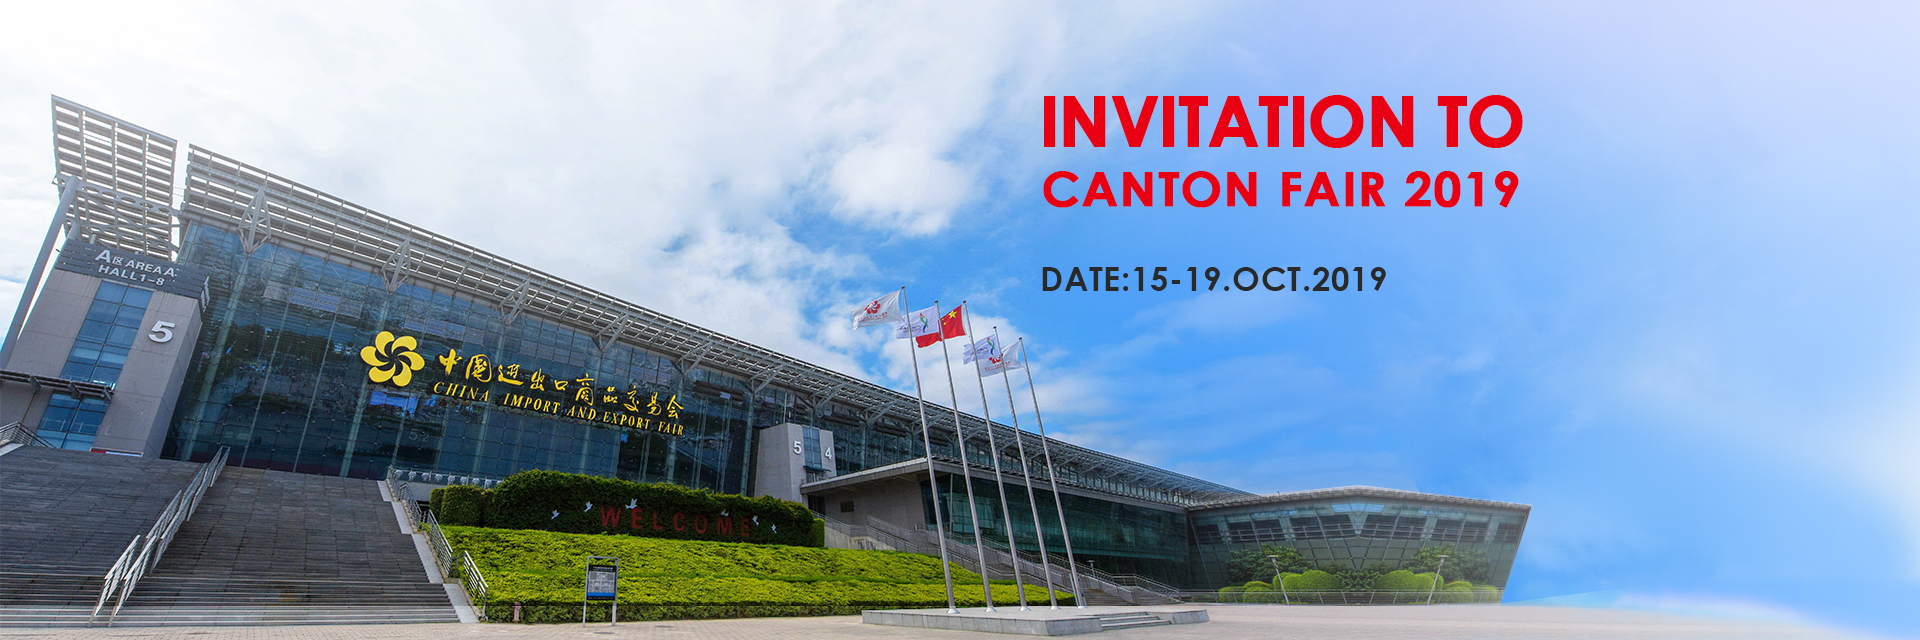 Invitation To Canton Fair 2019